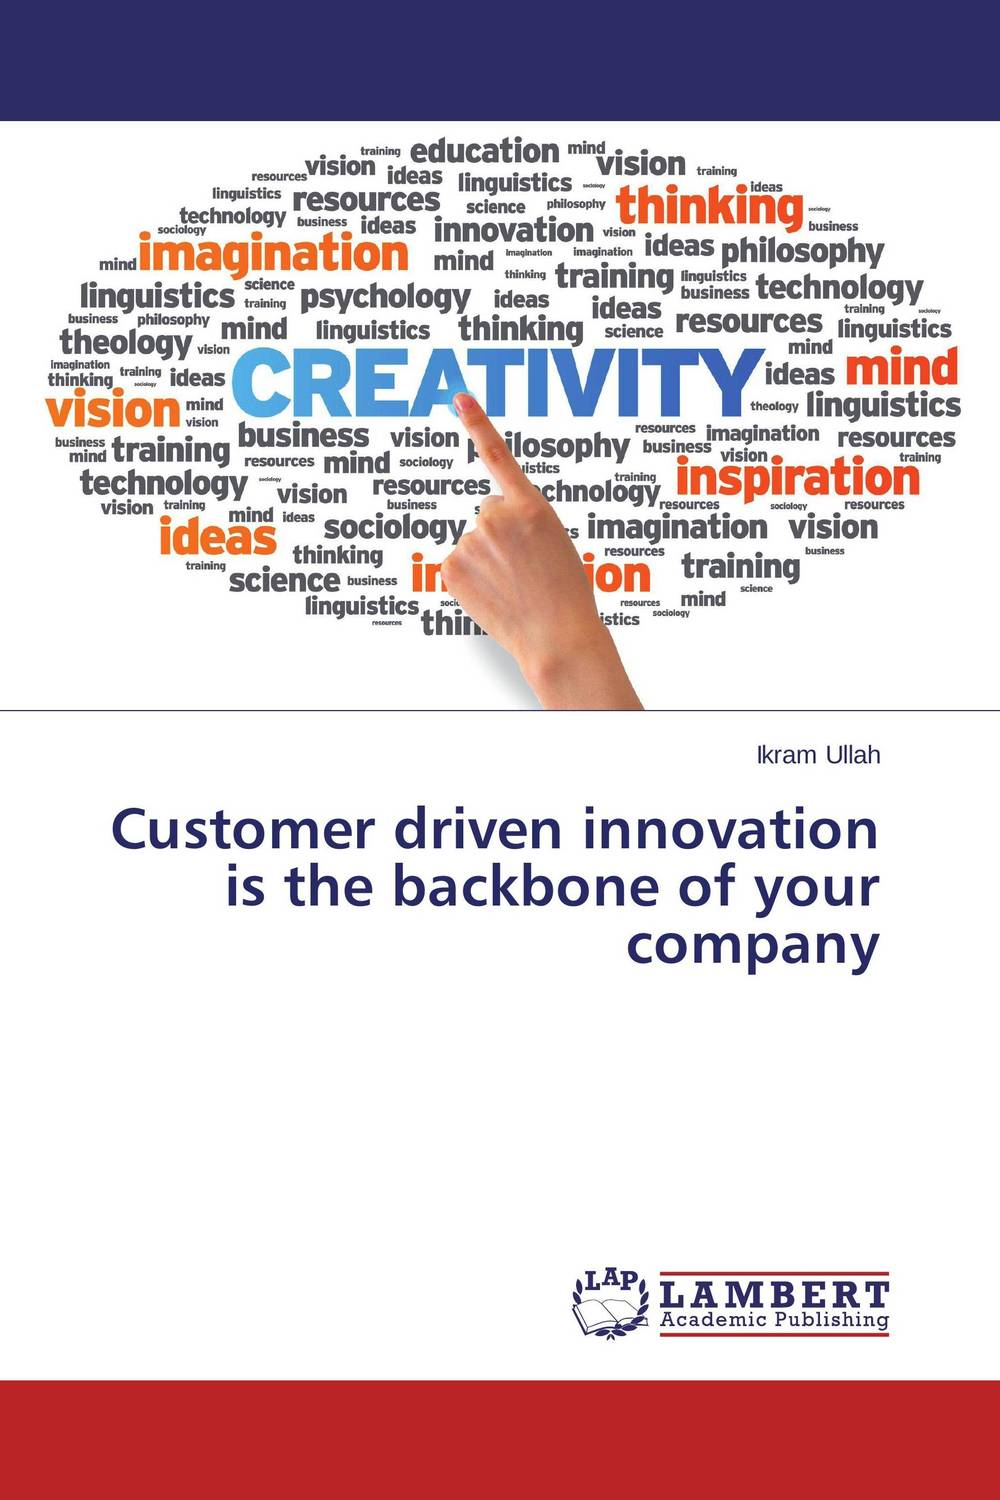 Customer driven innovation is the backbone of your company driven to distraction